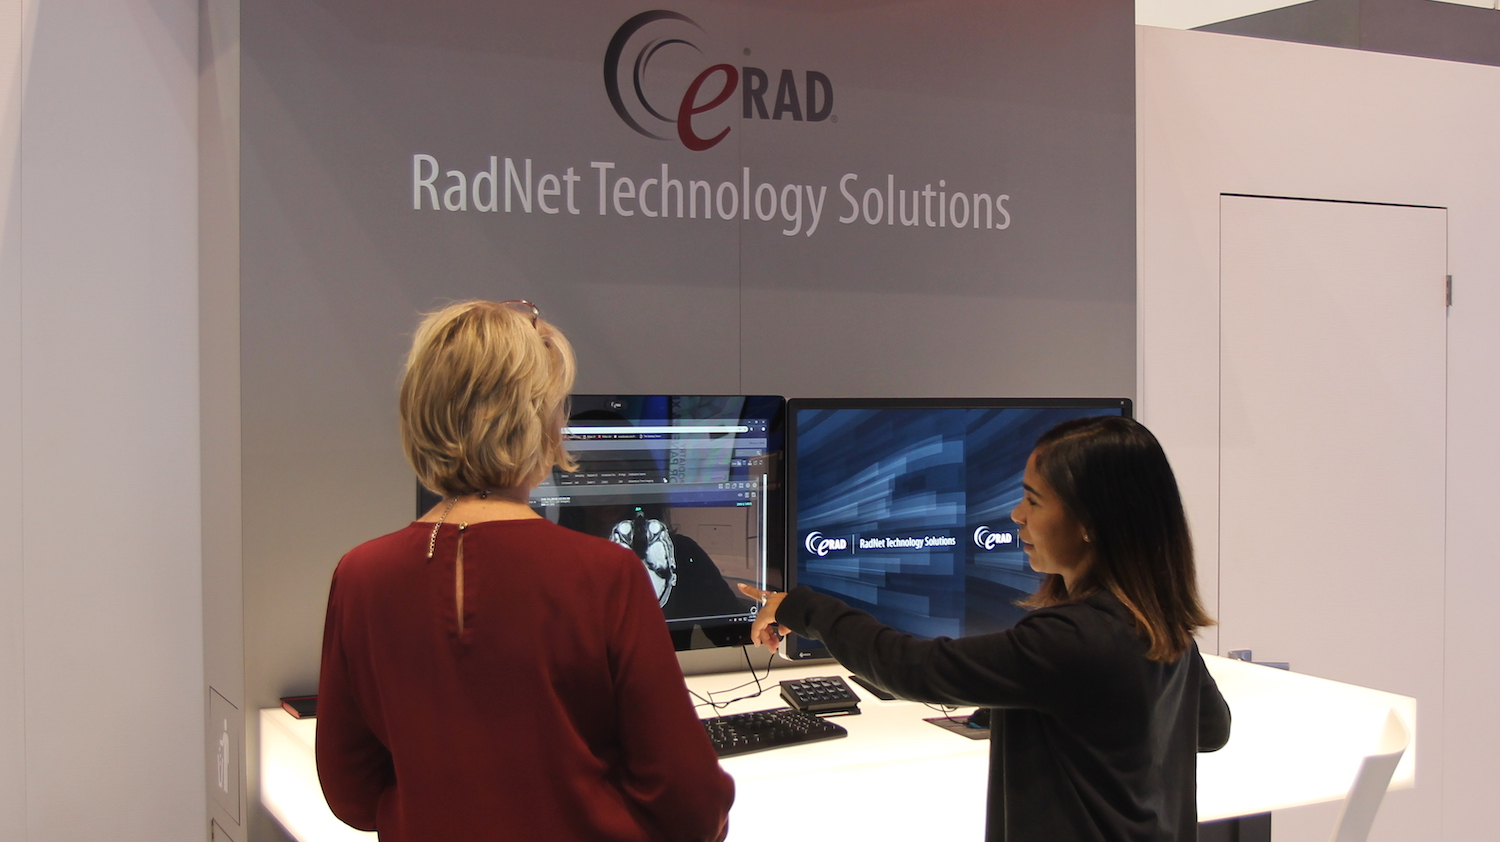 RadNet Radiology IT Innovation | eRAD Demonstrating its Radiology Solutions